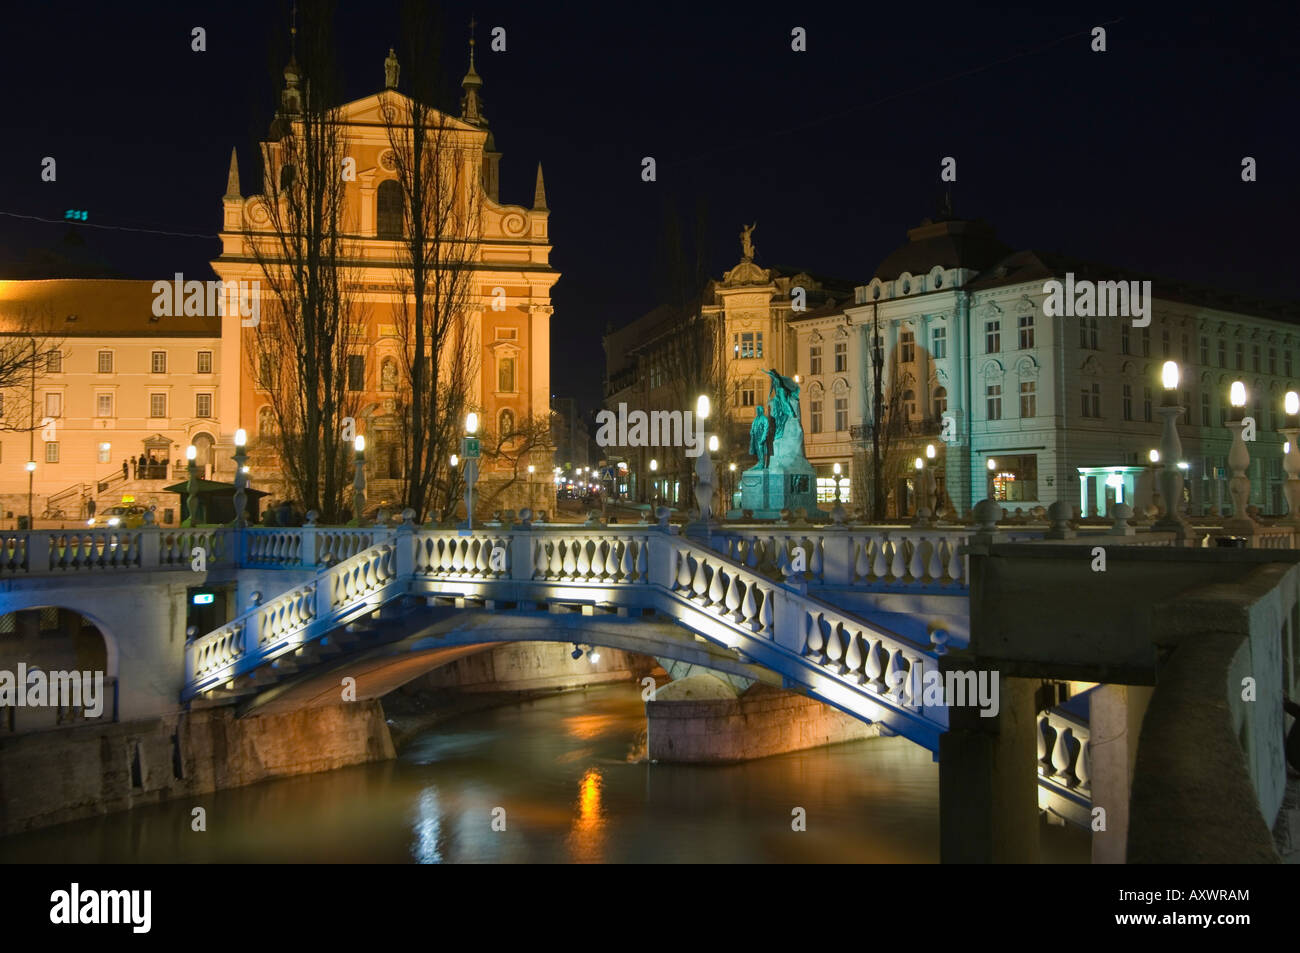 Tromstovje Triple bridge over the River Ljubljanica, Franciscan Church and Preseeren Square at night, Ljubljana, - Stock Image